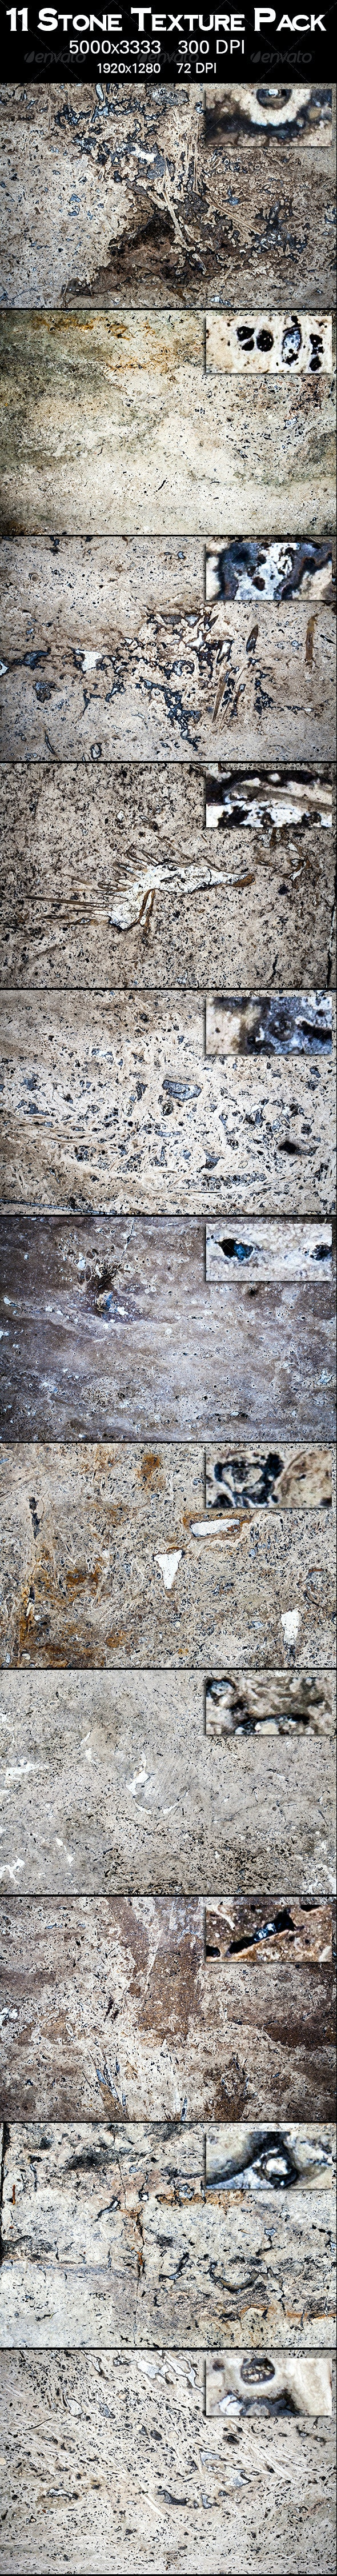 11 Stone Texture Pack - Stone Textures